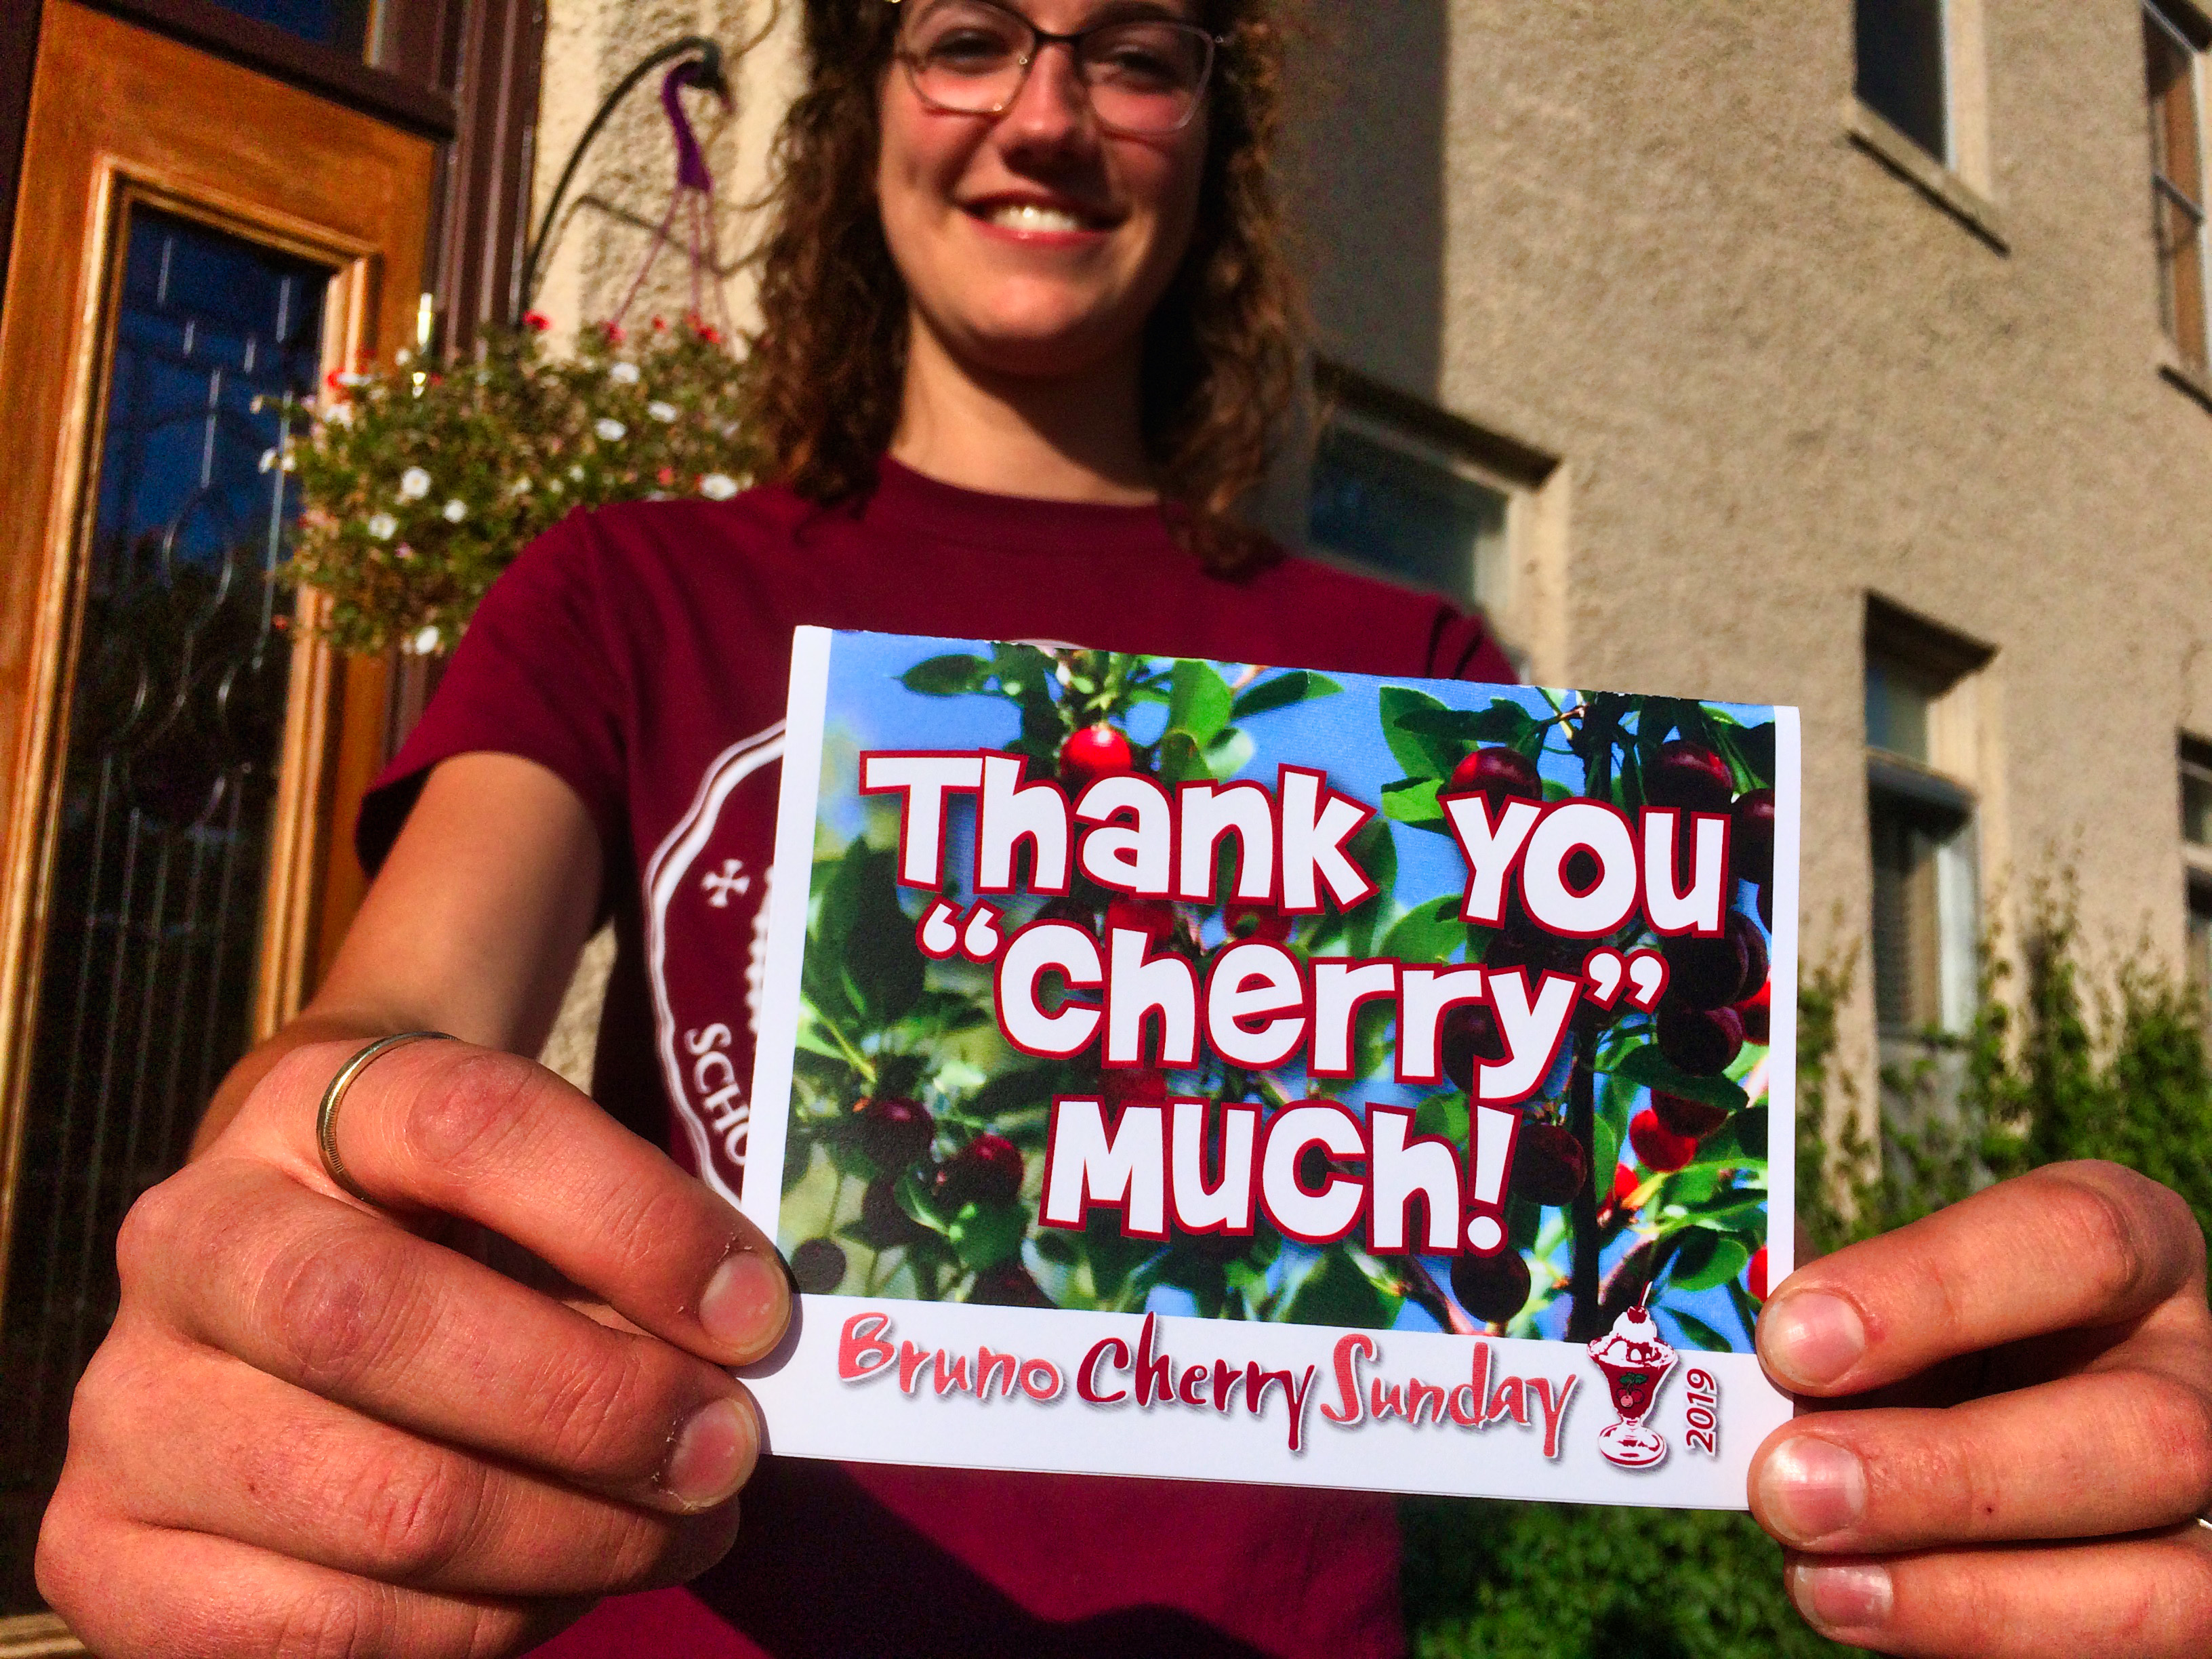 Thank you CHERRY MUCH!